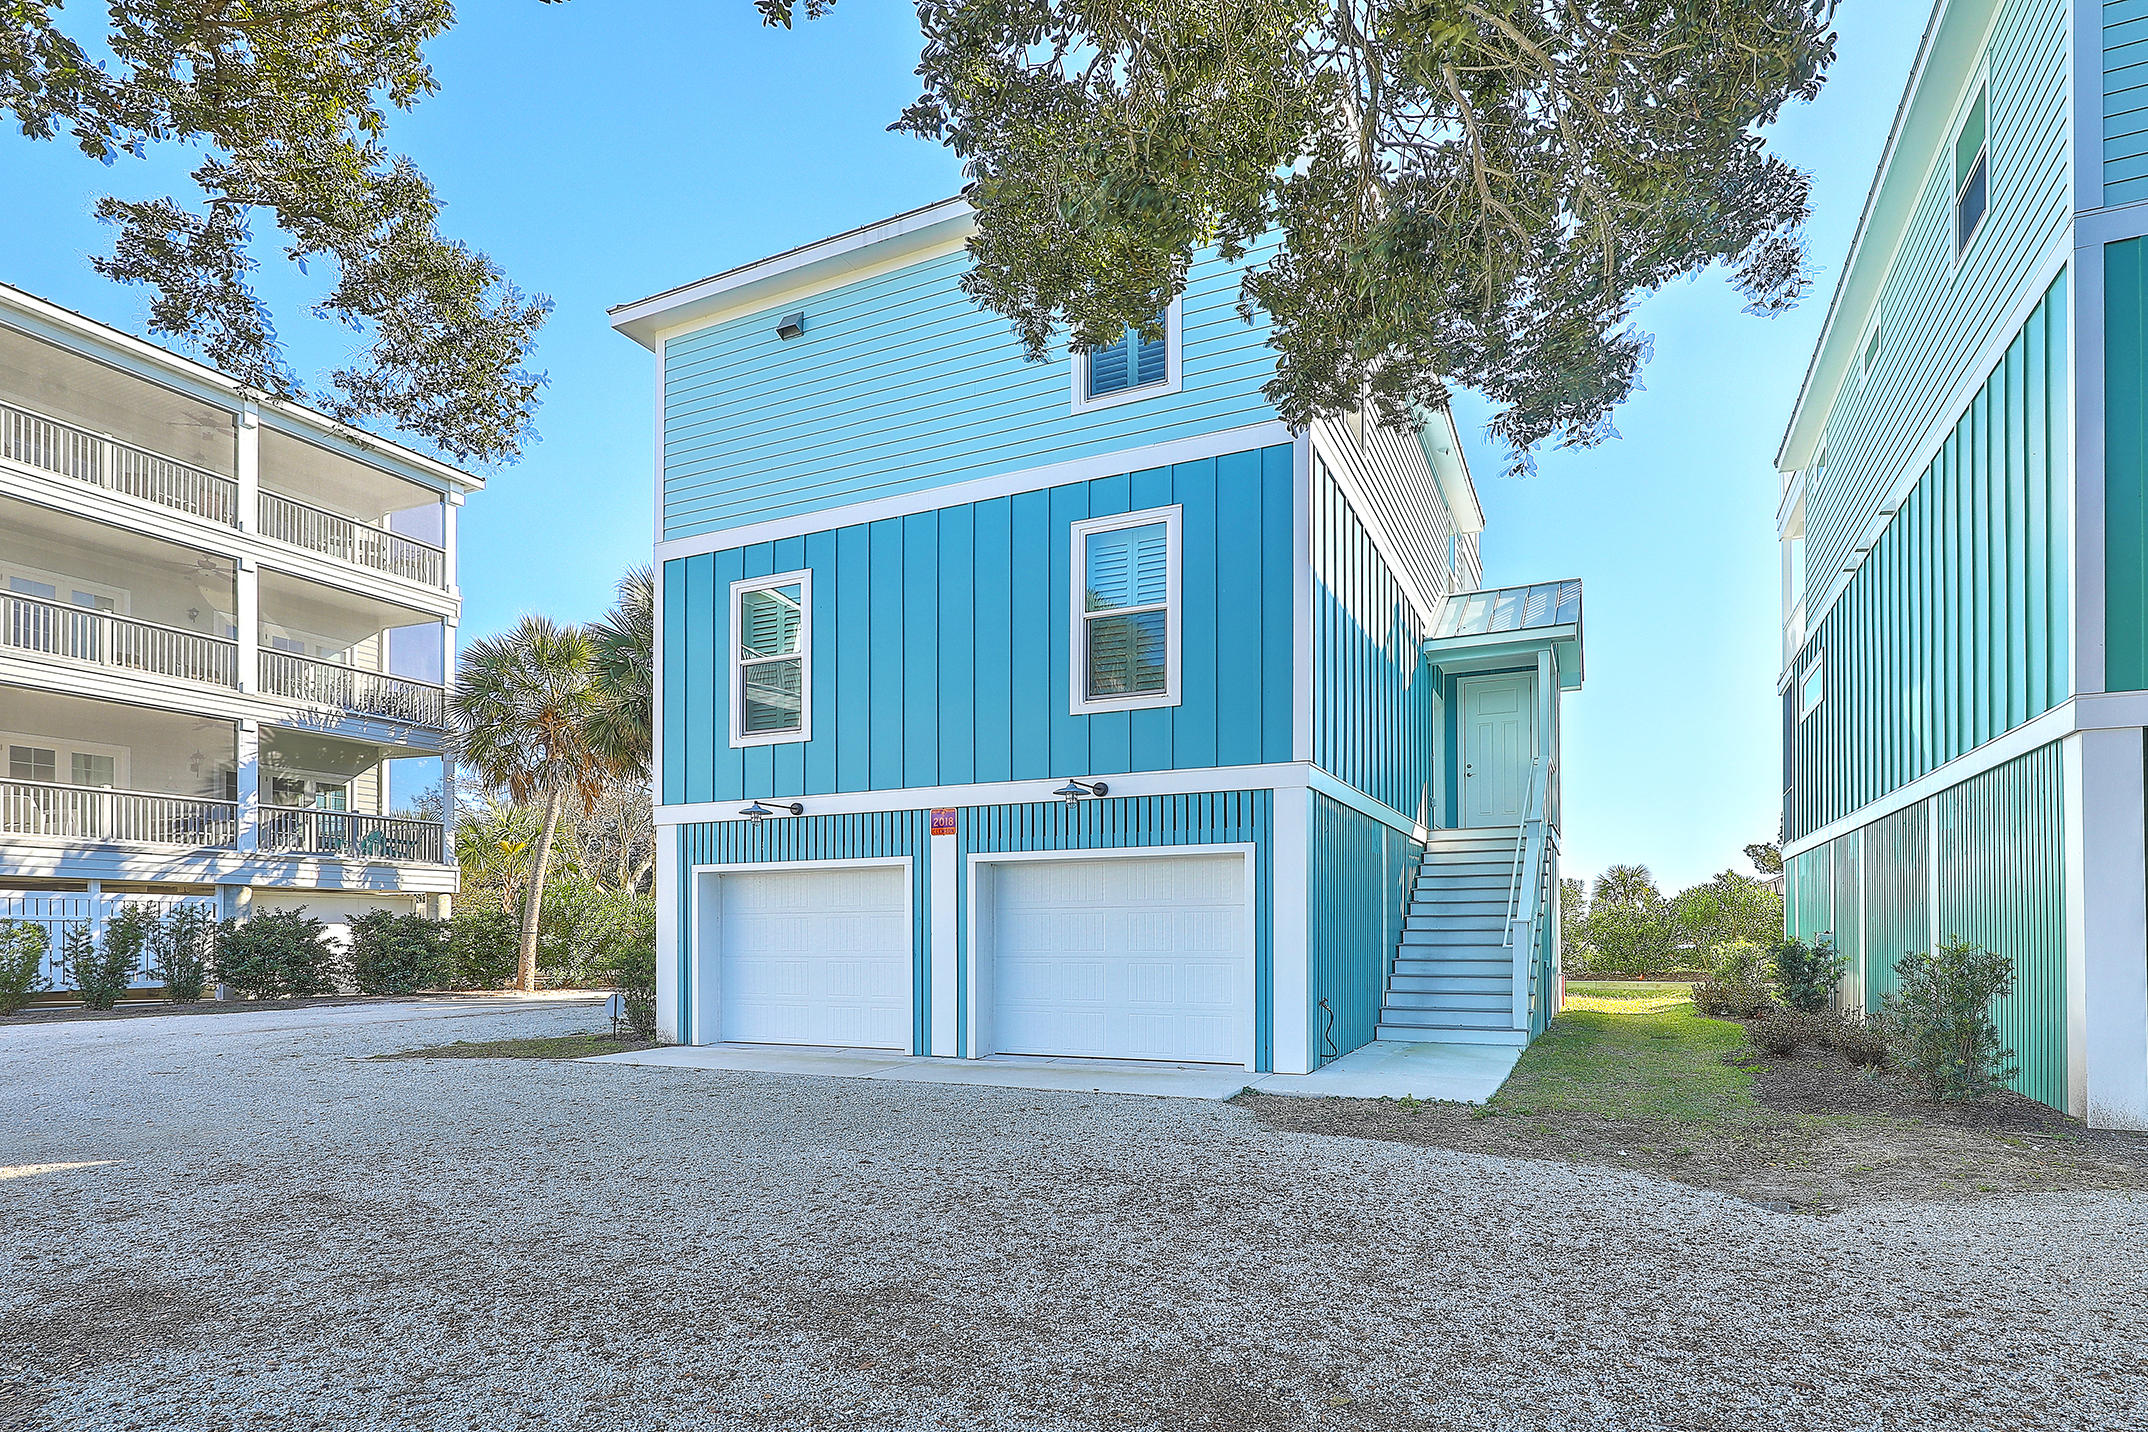 Mariners Cay Homes For Sale - 1002 Mariners Cay, Folly Beach, SC - 15